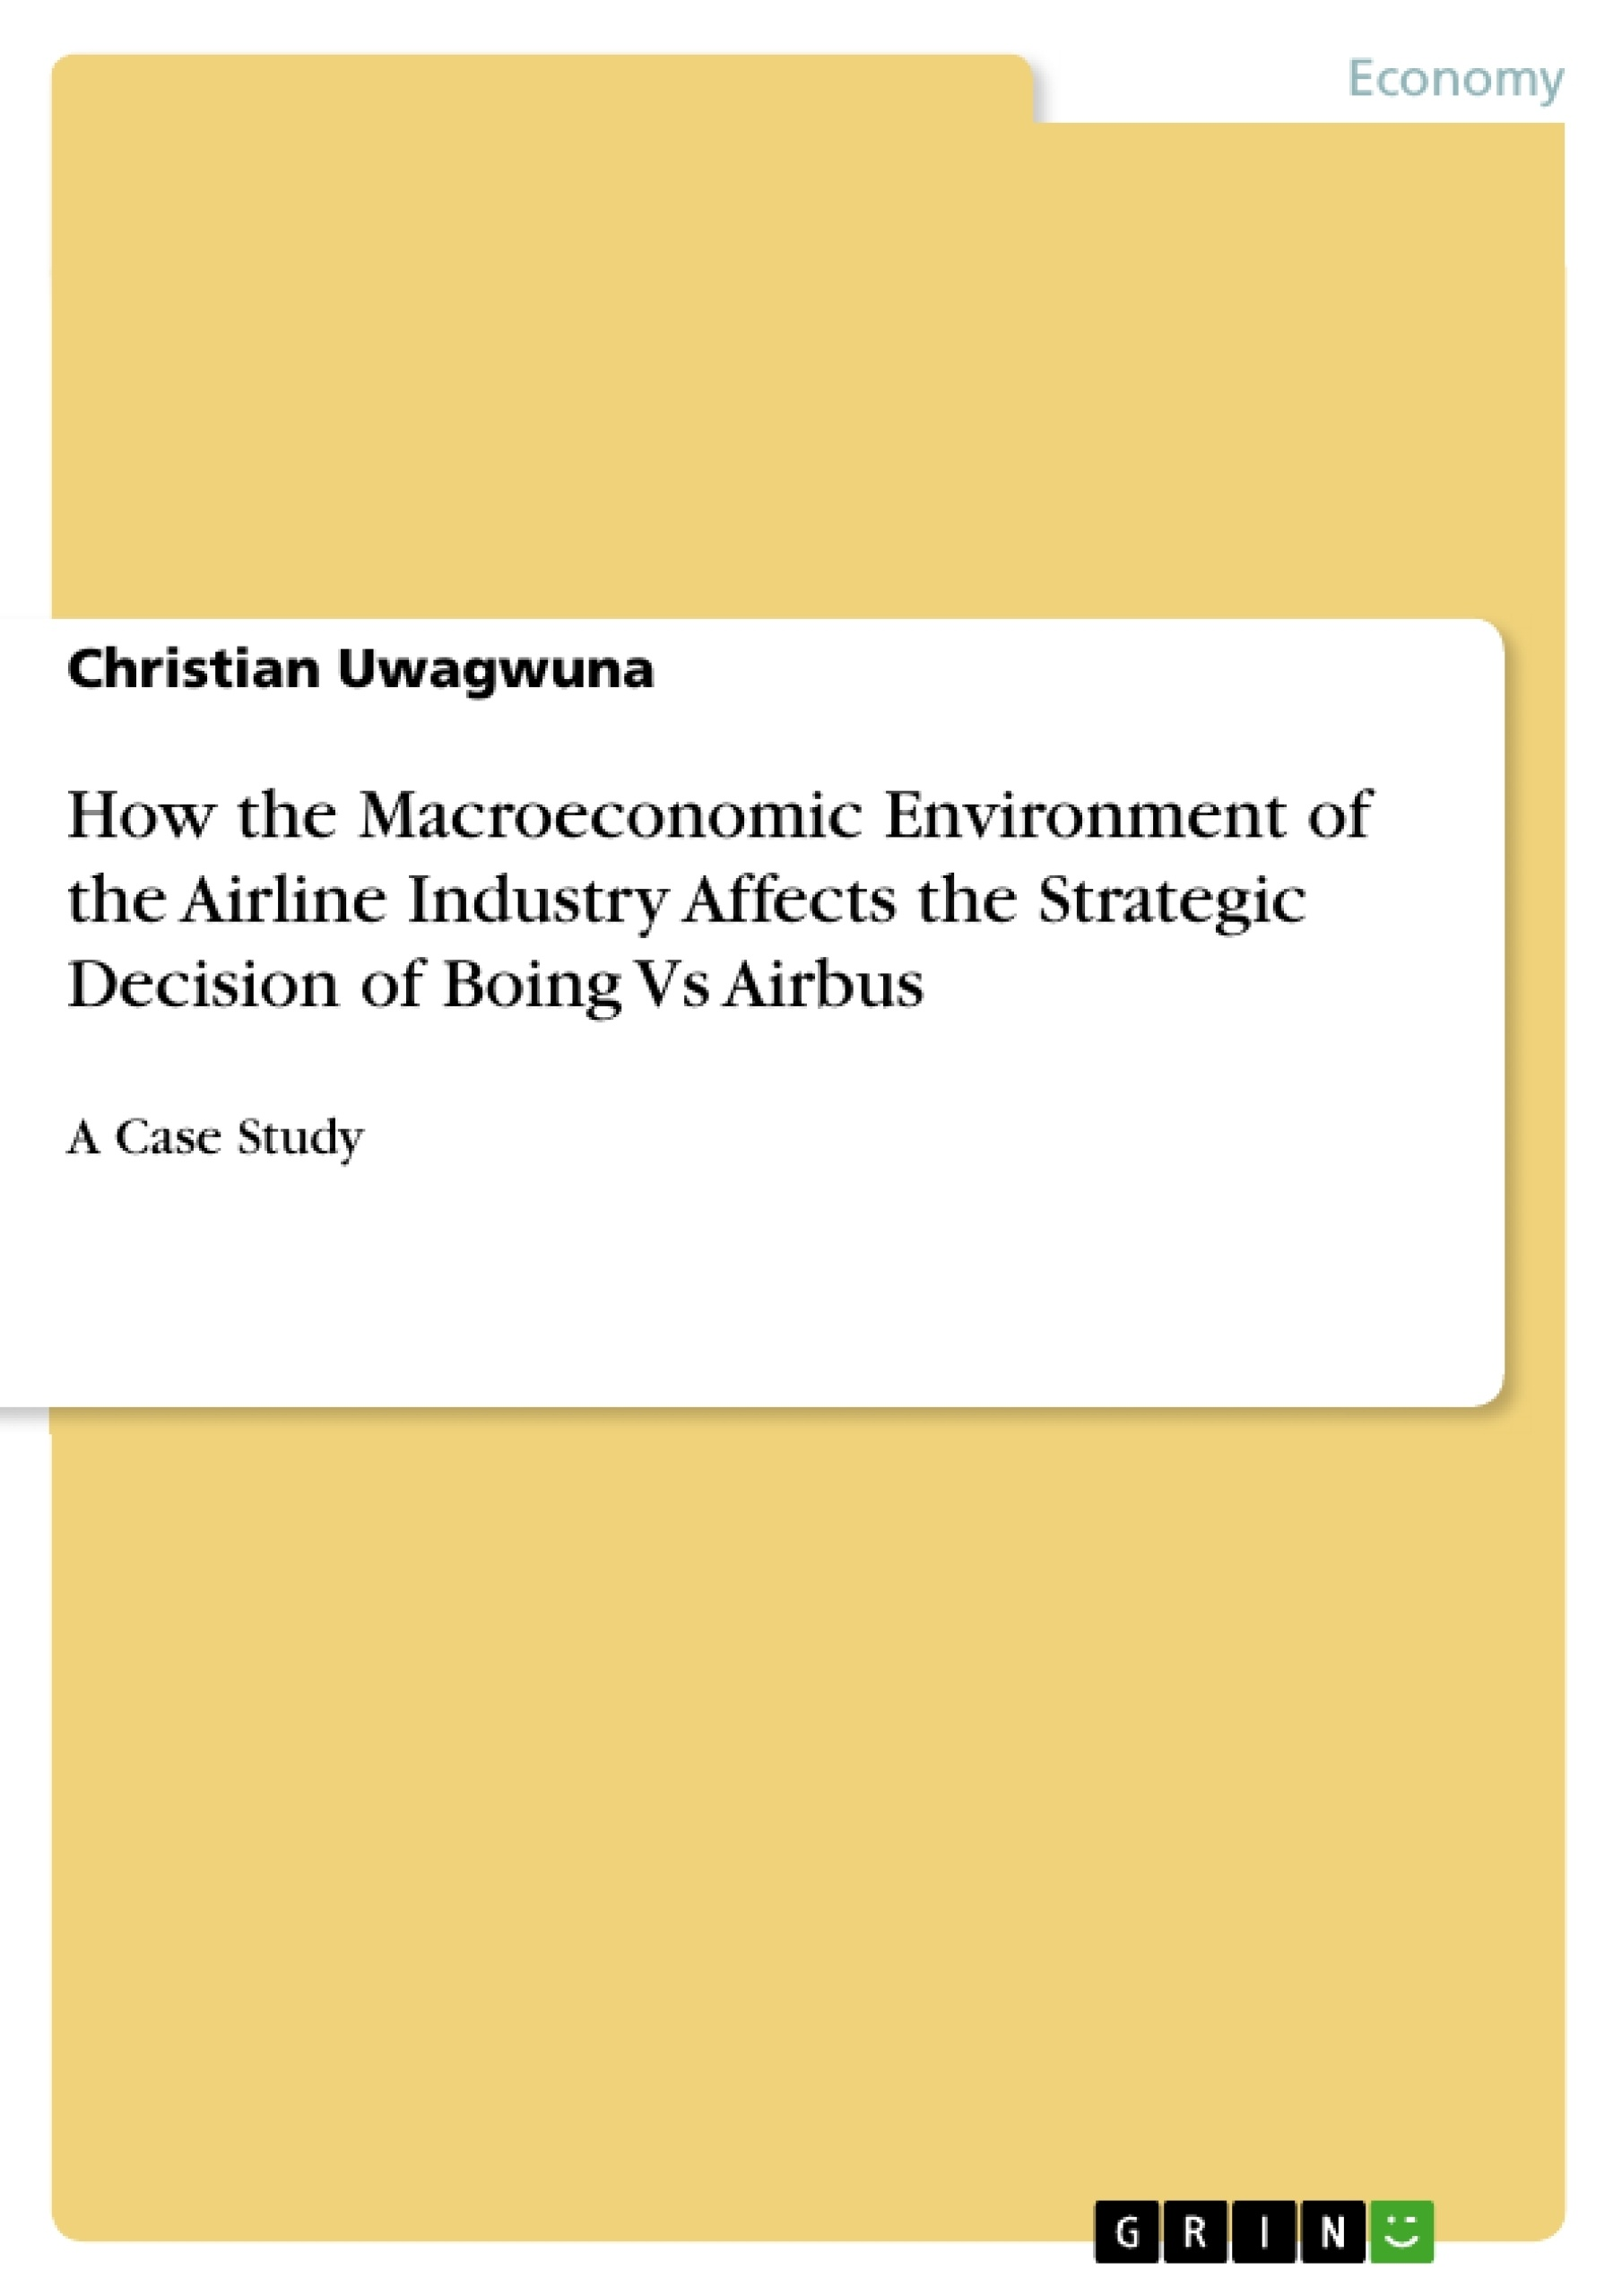 Title: How the Macroeconomic Environment of the Airline Industry Affects the Strategic Decision of Boing Vs Airbus